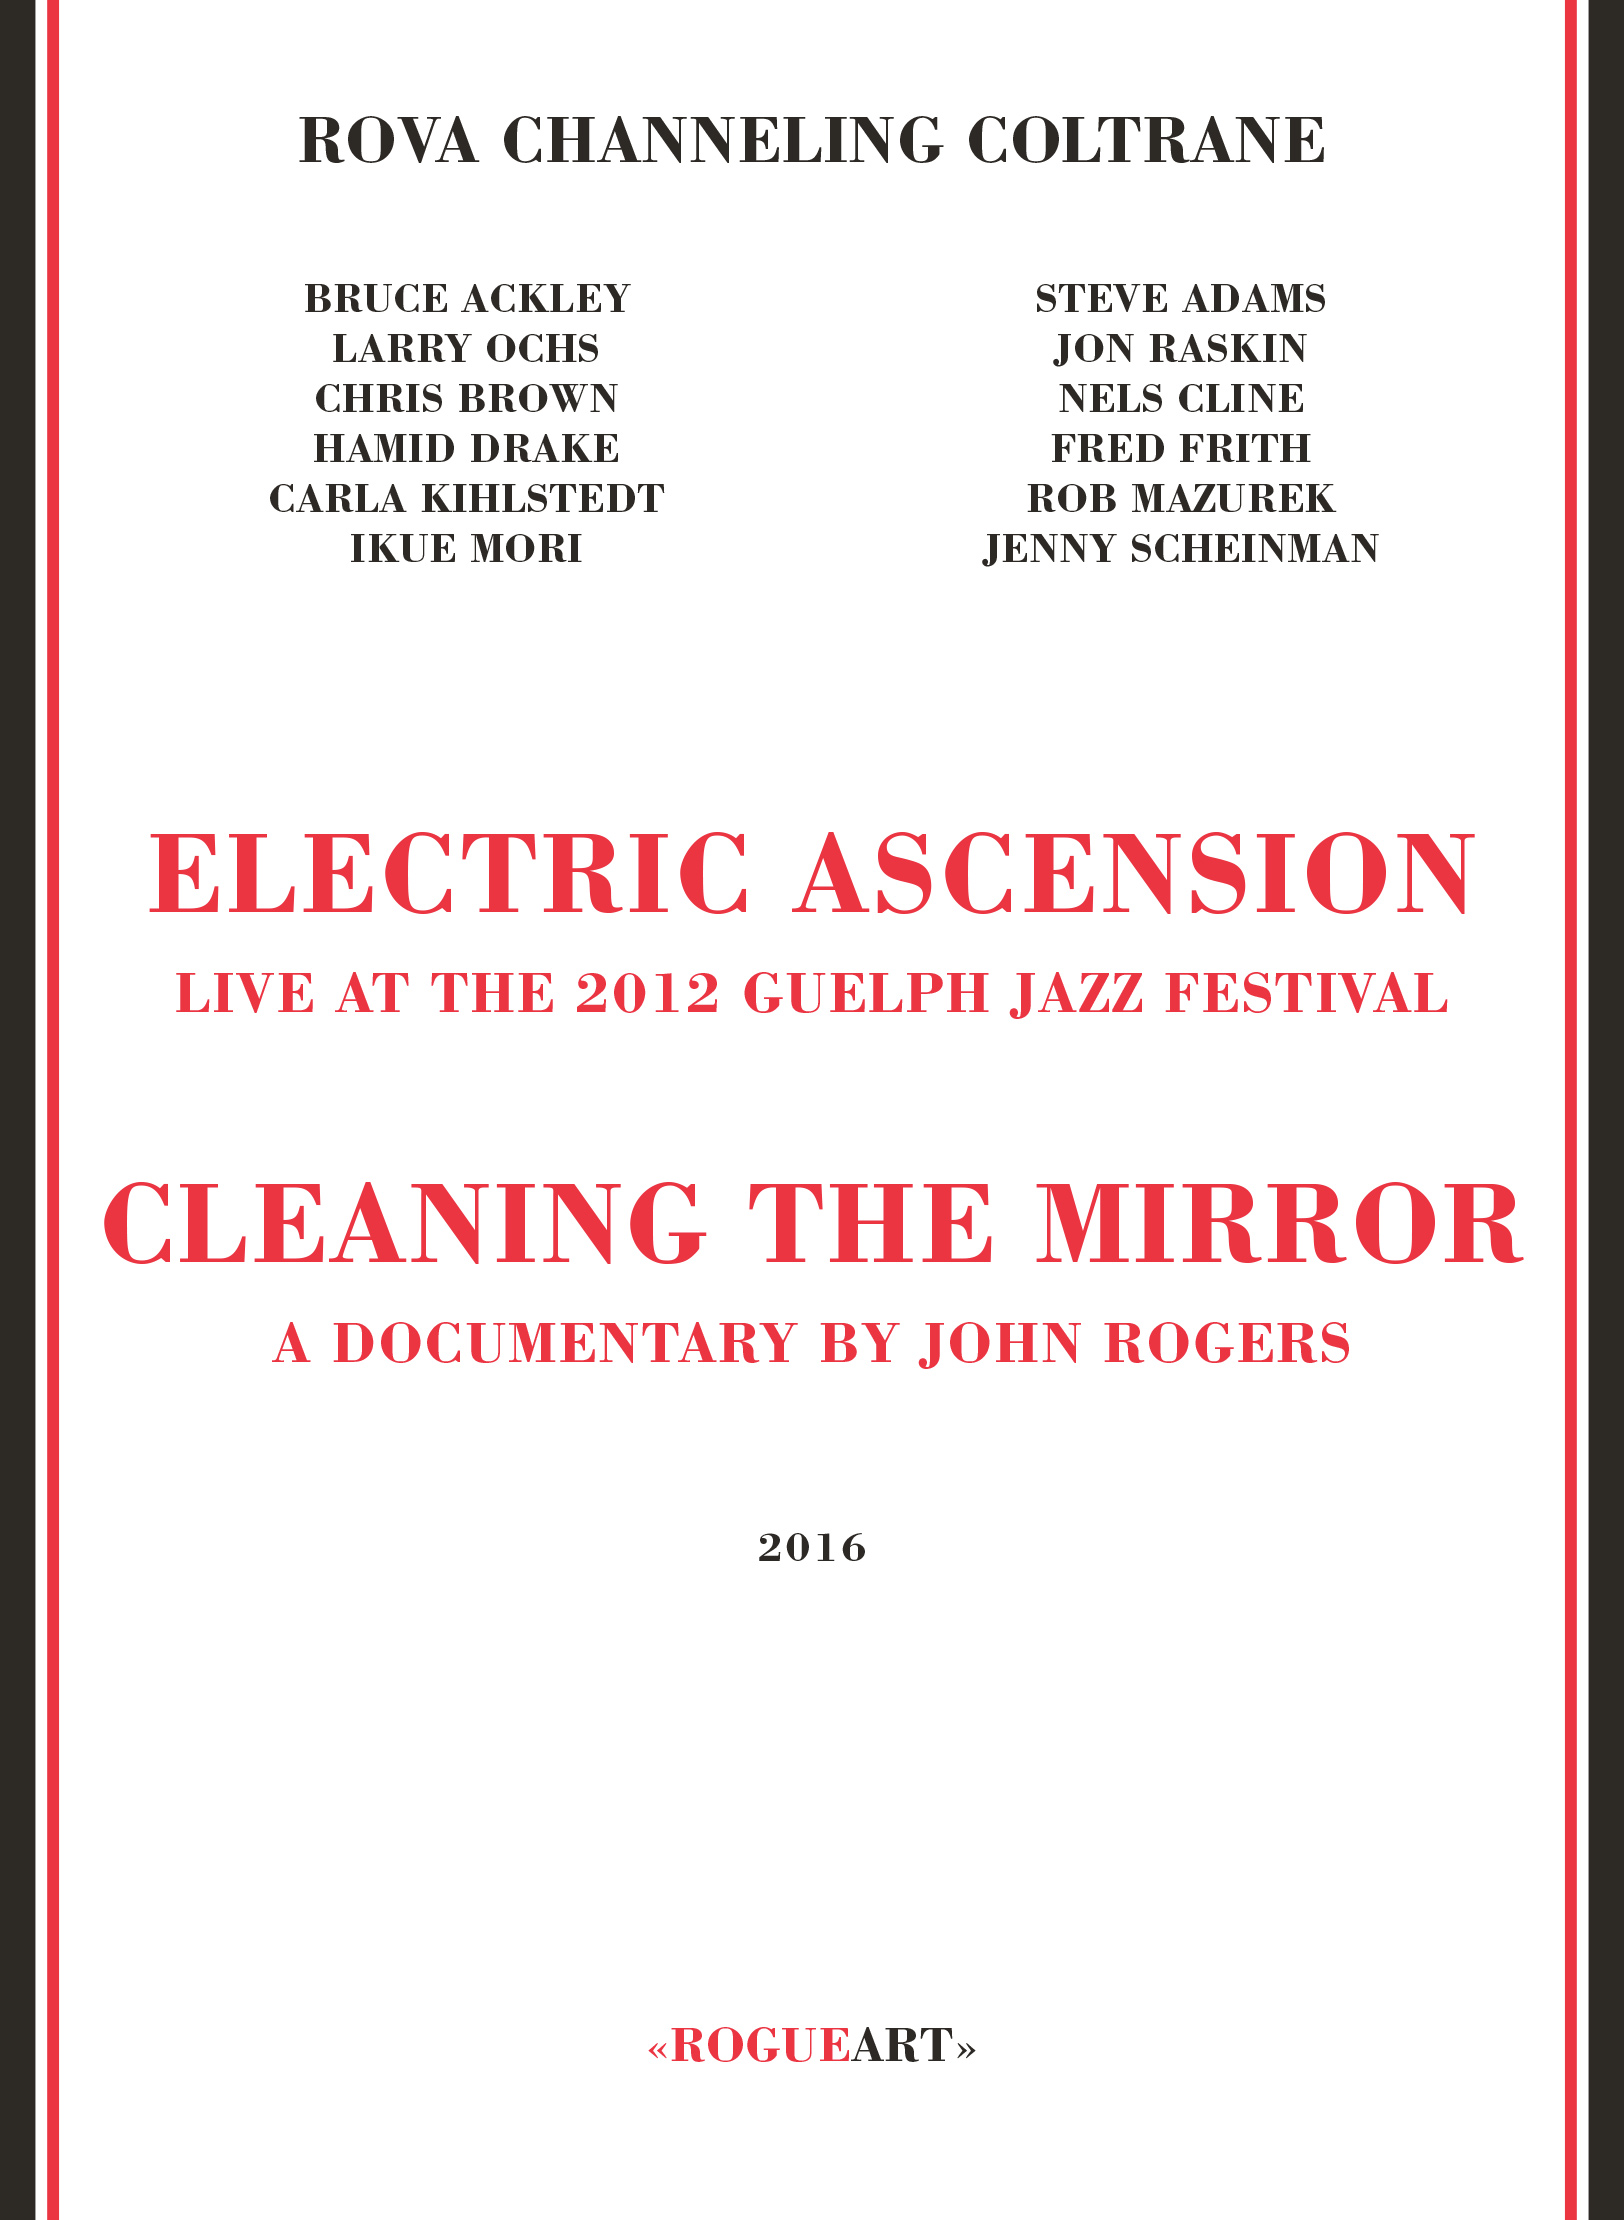 Front cover of the album ELECTRIC ASCENSION